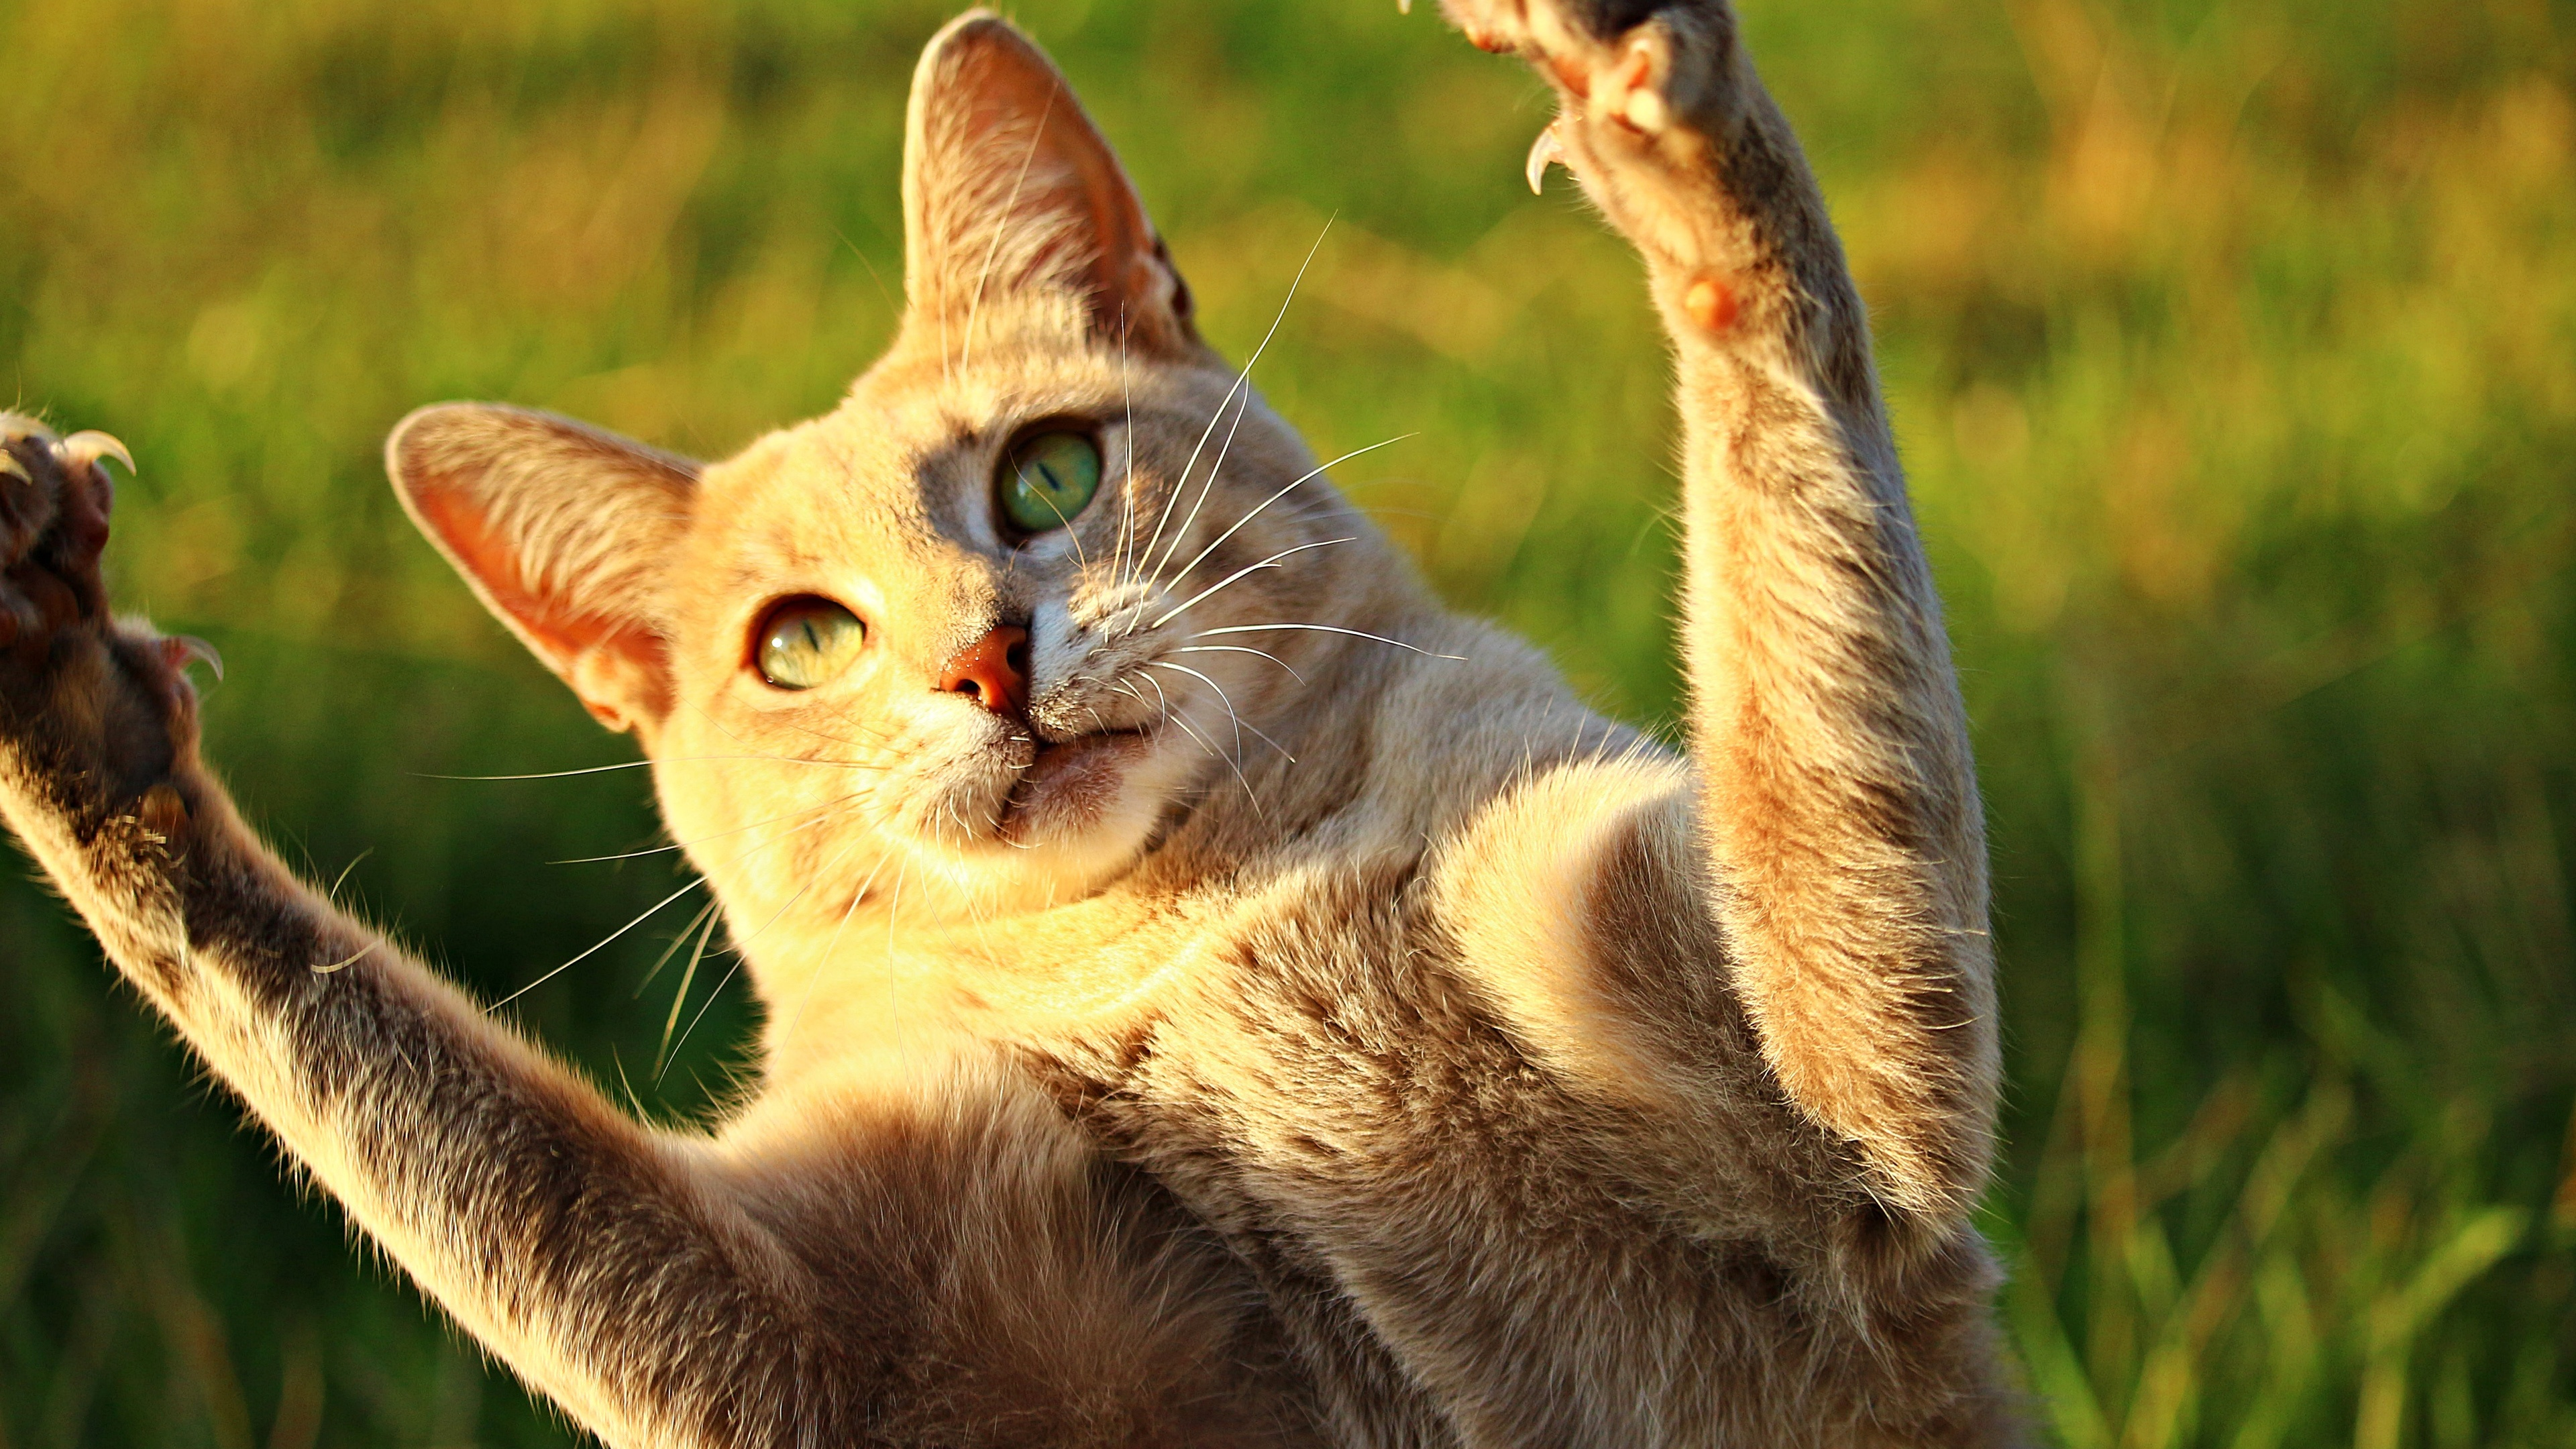 Wallpaper Cute Cat Lift Paws Up Sunshine Funny Animals